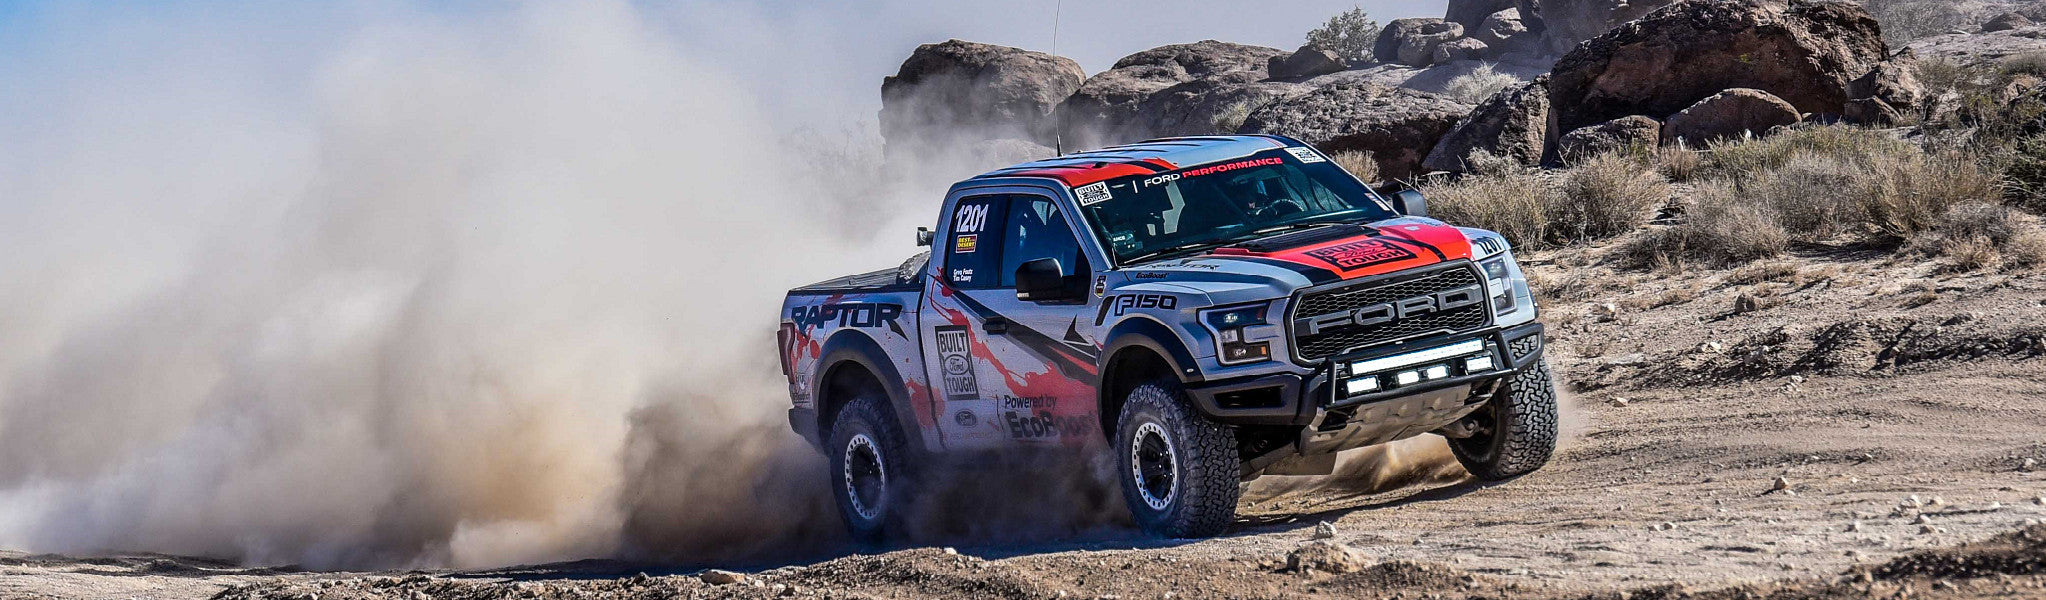 The Ford All New 2017 Ford Raptor - Race Truck